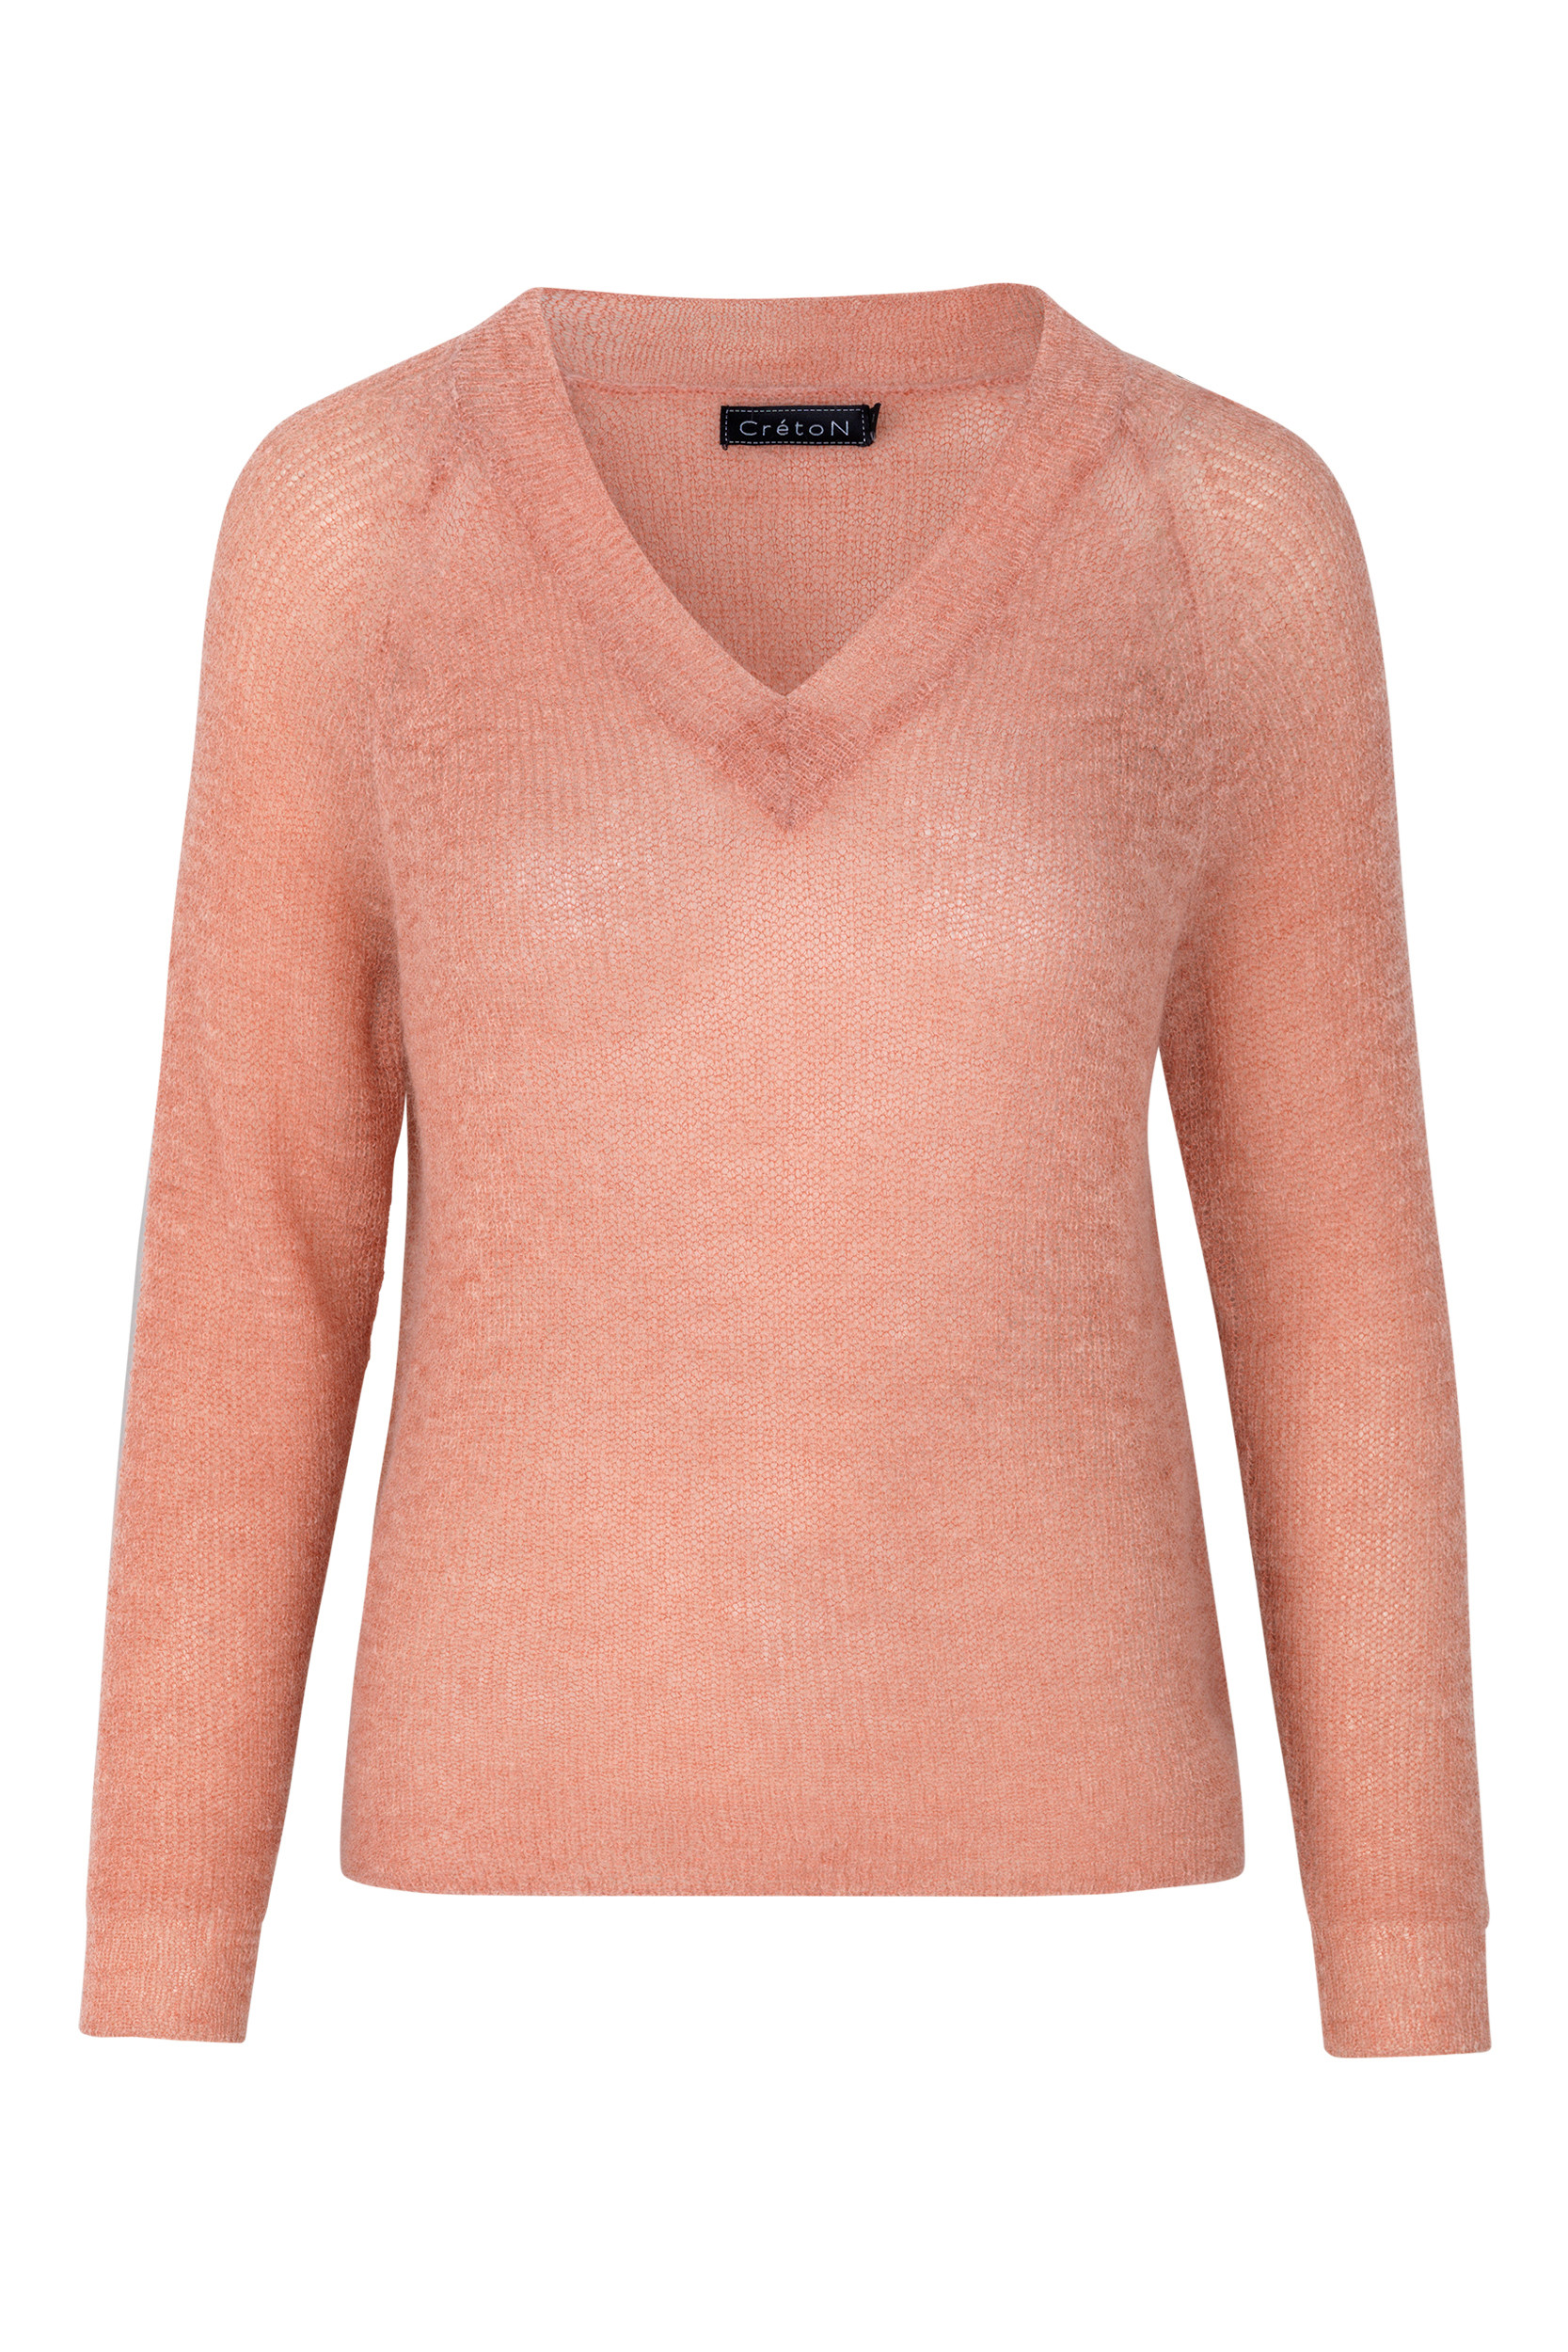 Image of   A-Exxie Sweater i 2 Farver - Rosa